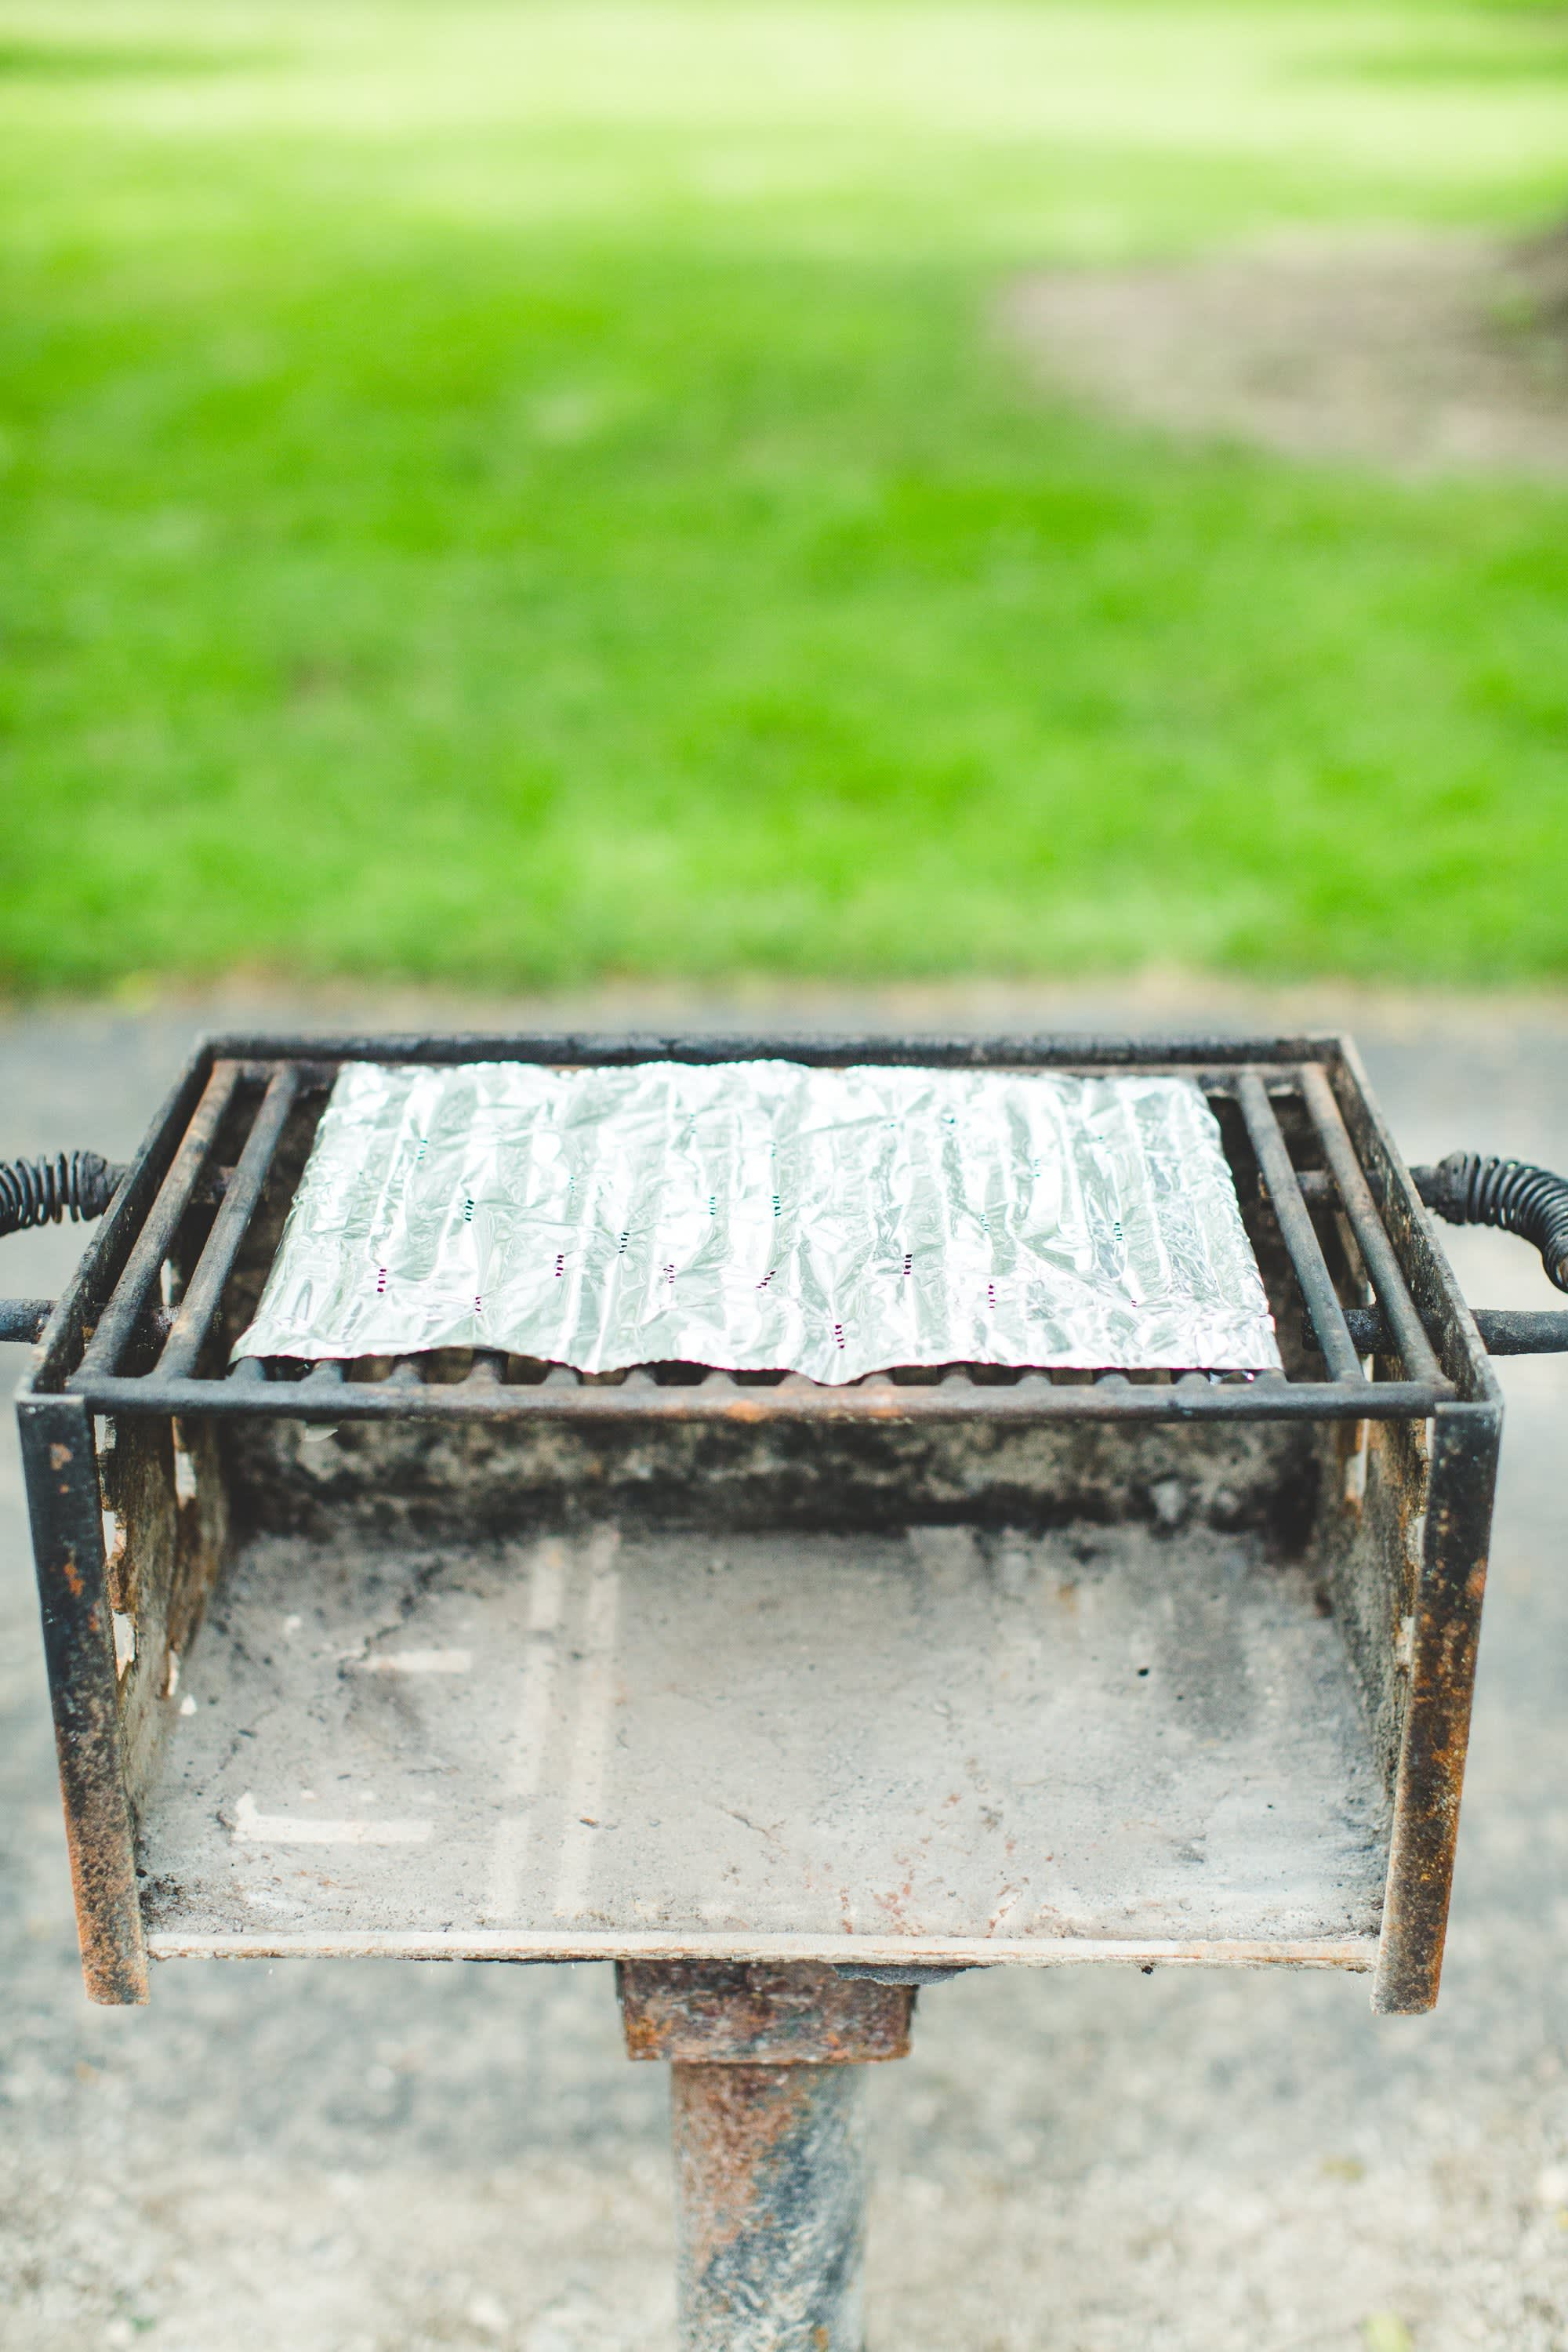 How To Clean a Charcoal Grill: gallery image 5